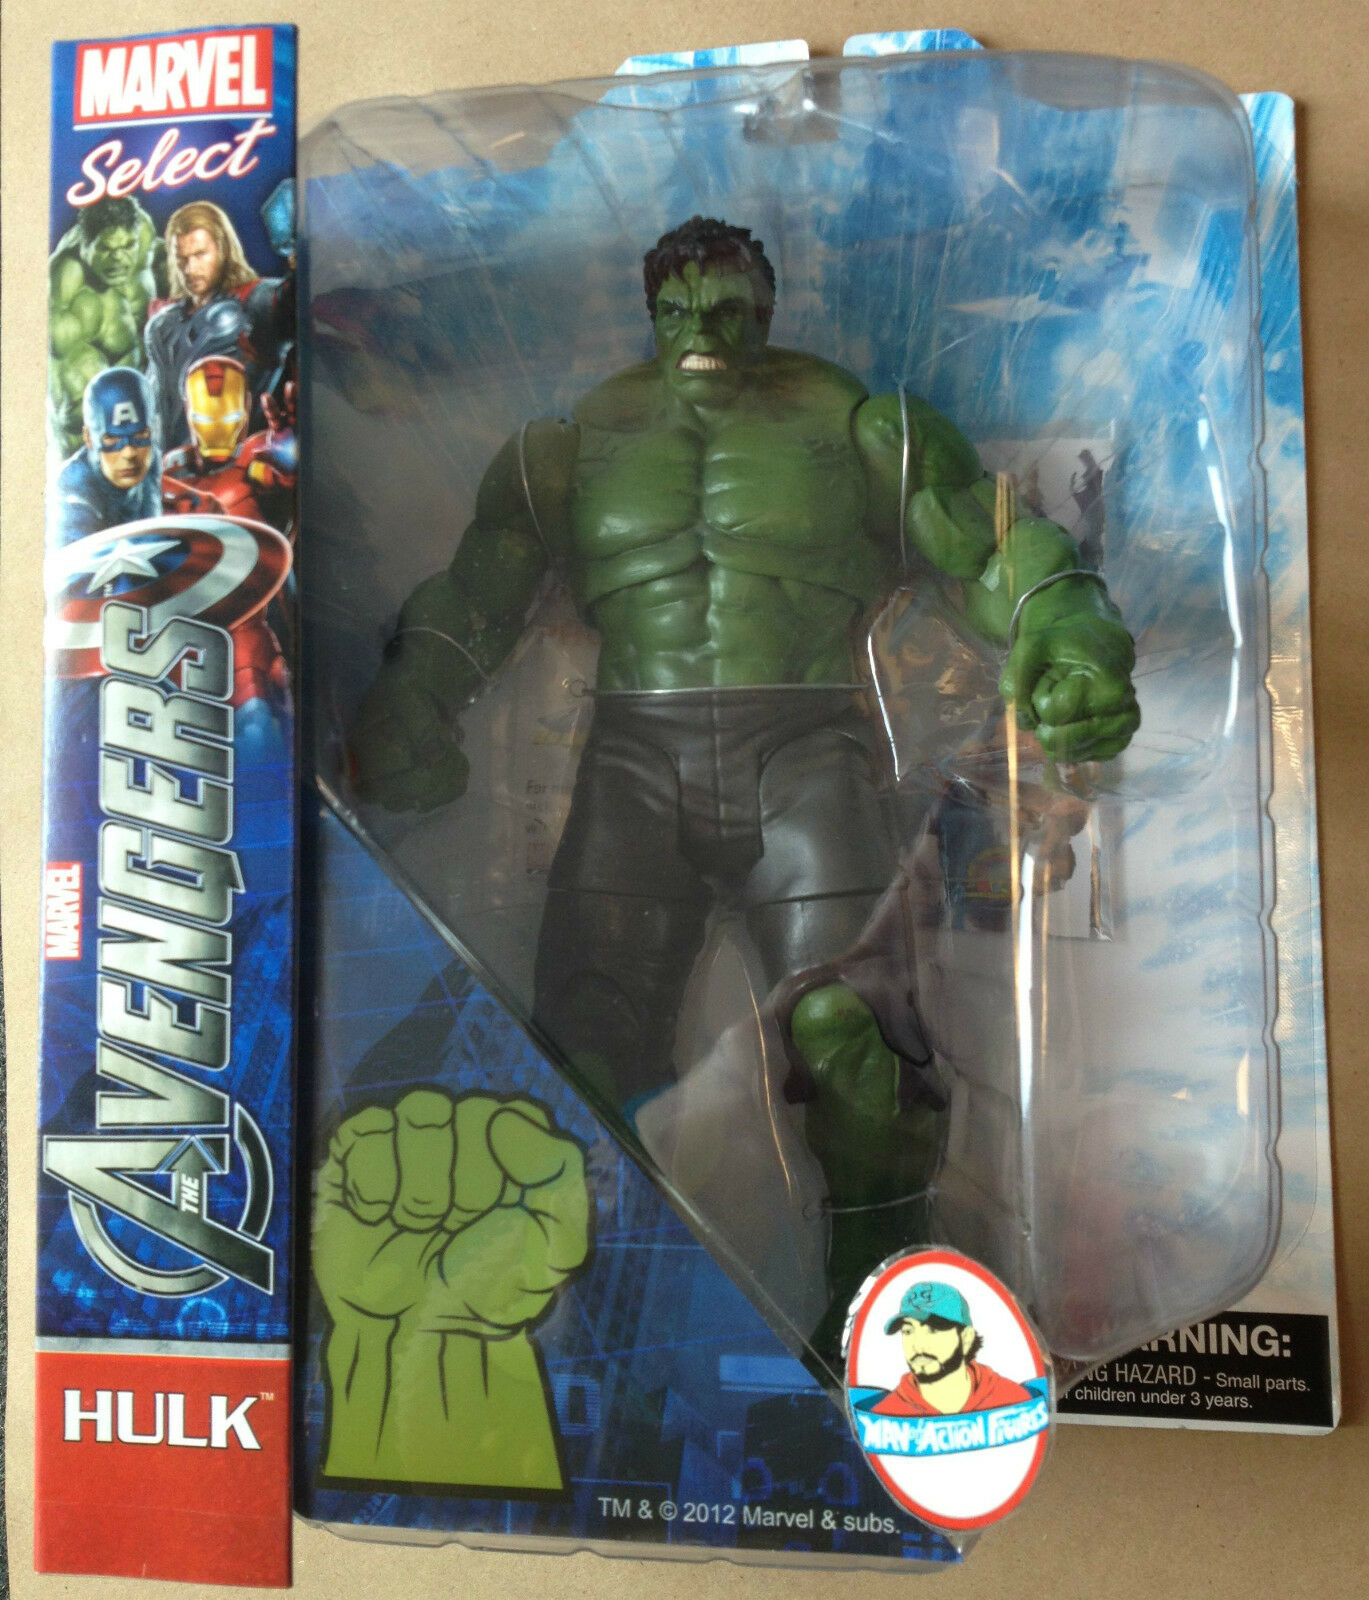 MARVEL SELECT INCROTIBLE HULK THE AVENGERS MOVIE ACTION FIGURE NEW FIGURE